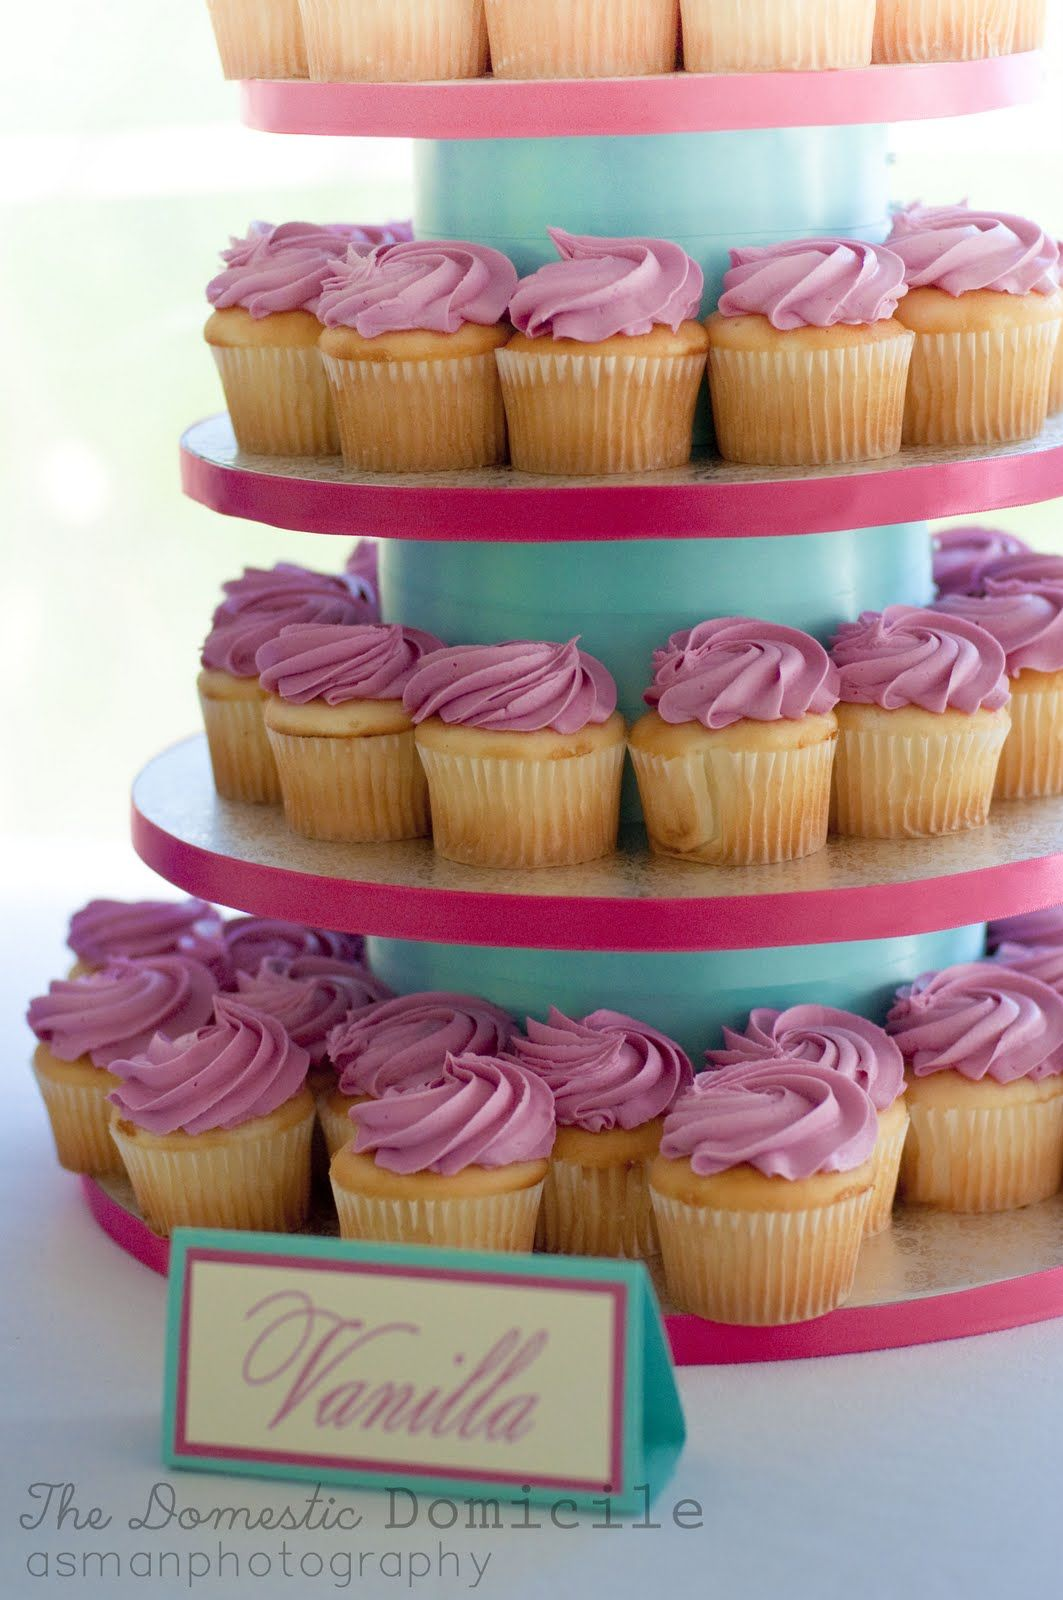 DIY Wedding Revisited: Cupcake Tower |The Domestic Domicile